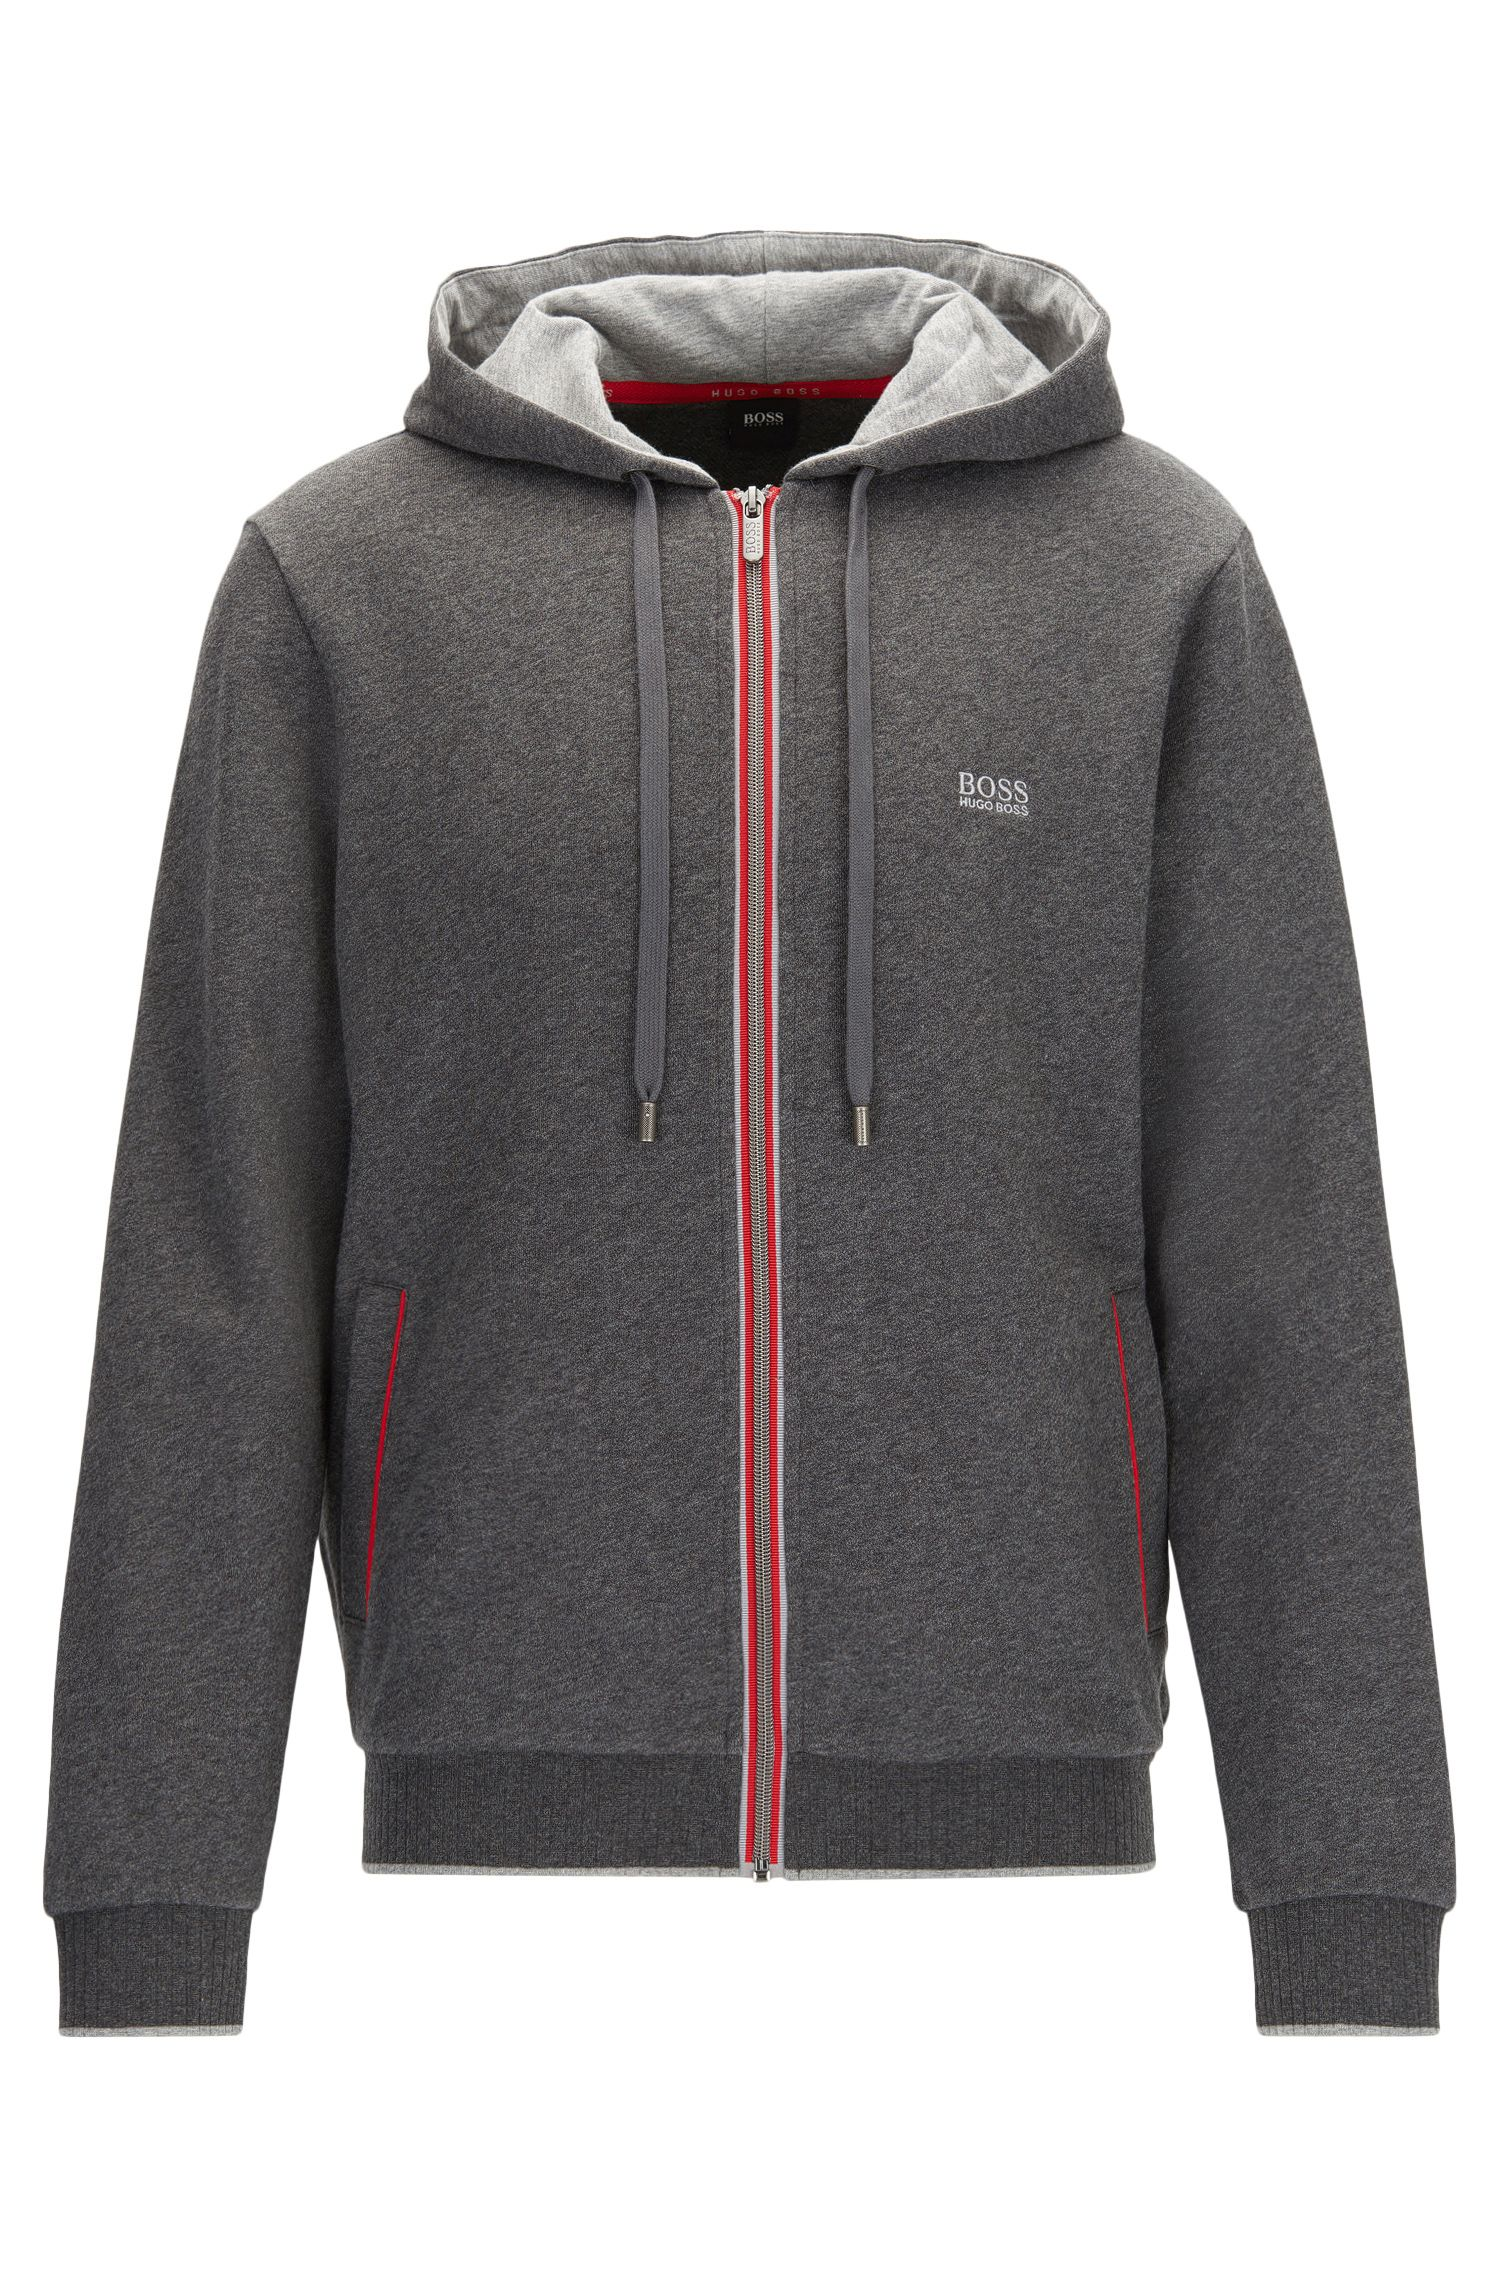 Piped Cotton Blend Jersey Hoodie | Authentic Jacket H